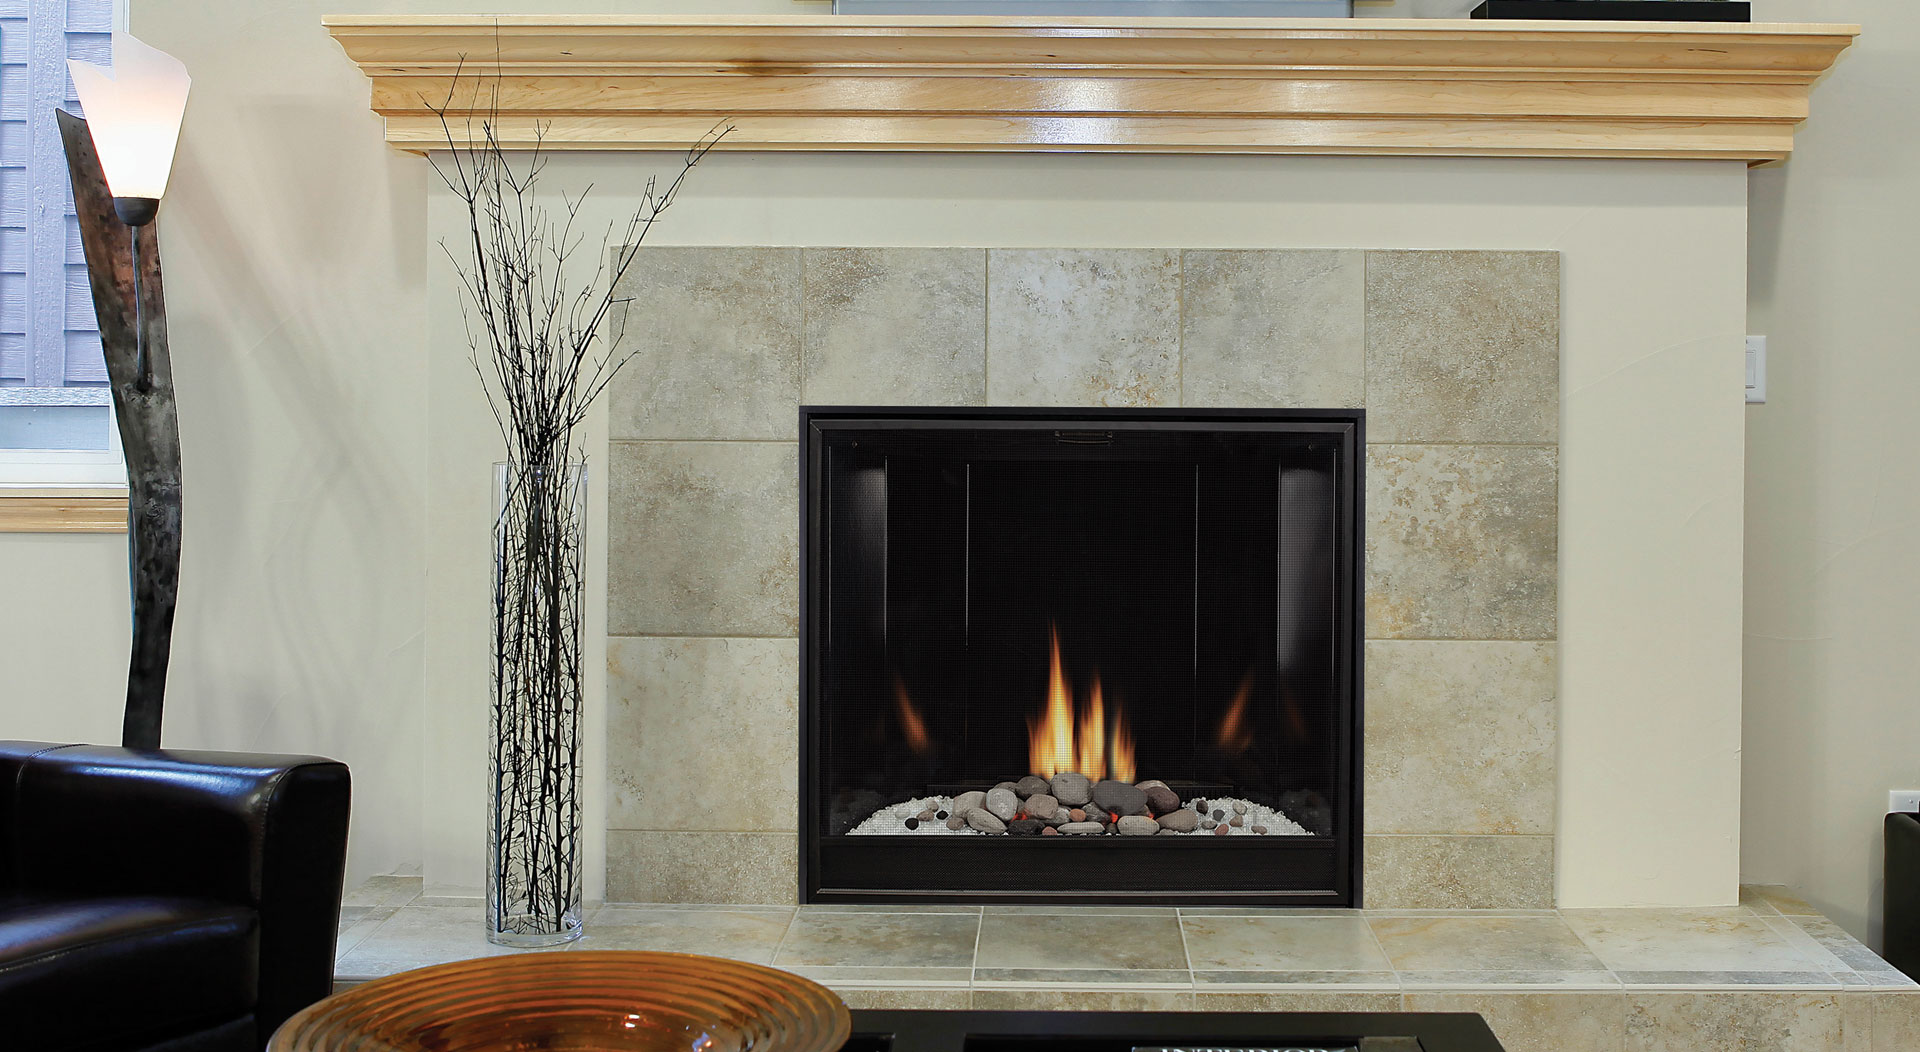 vent white hearth homepage boulevard mountain fireplaces empire direct fireplace slider